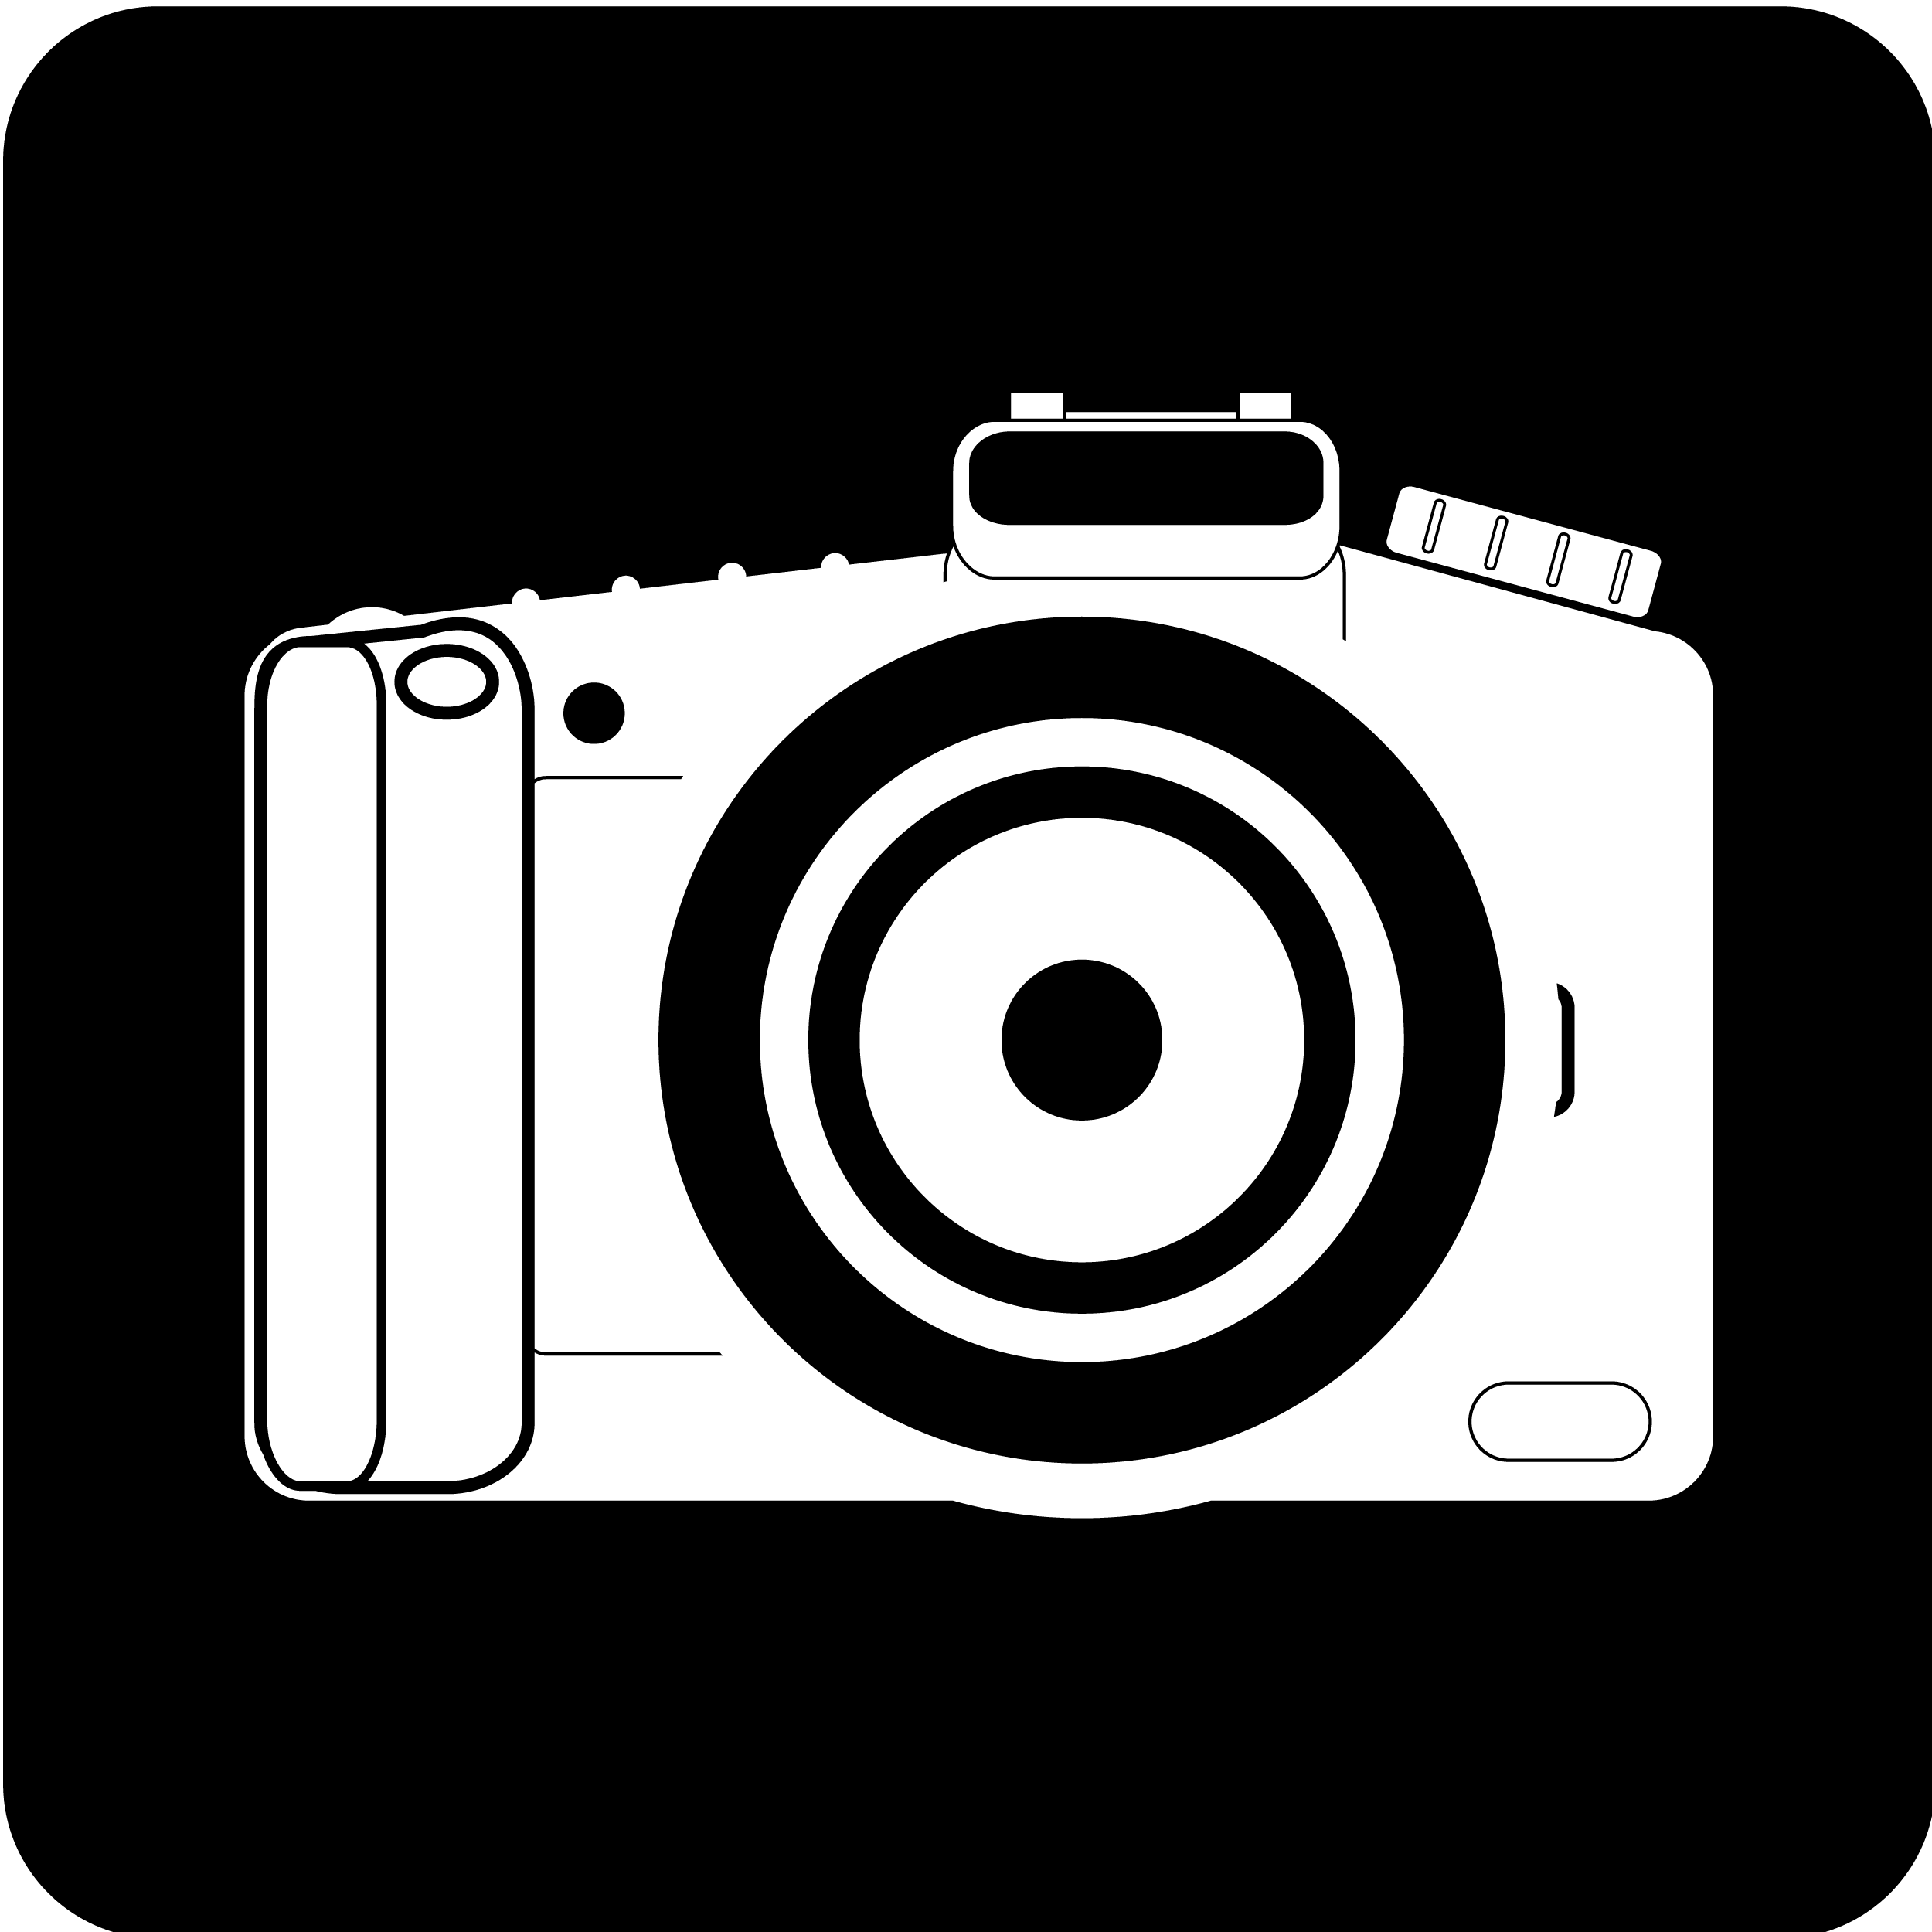 digital camera silhouette at getdrawings com free for personal use rh getdrawings com free clipart cameraman free clipart camera photographer